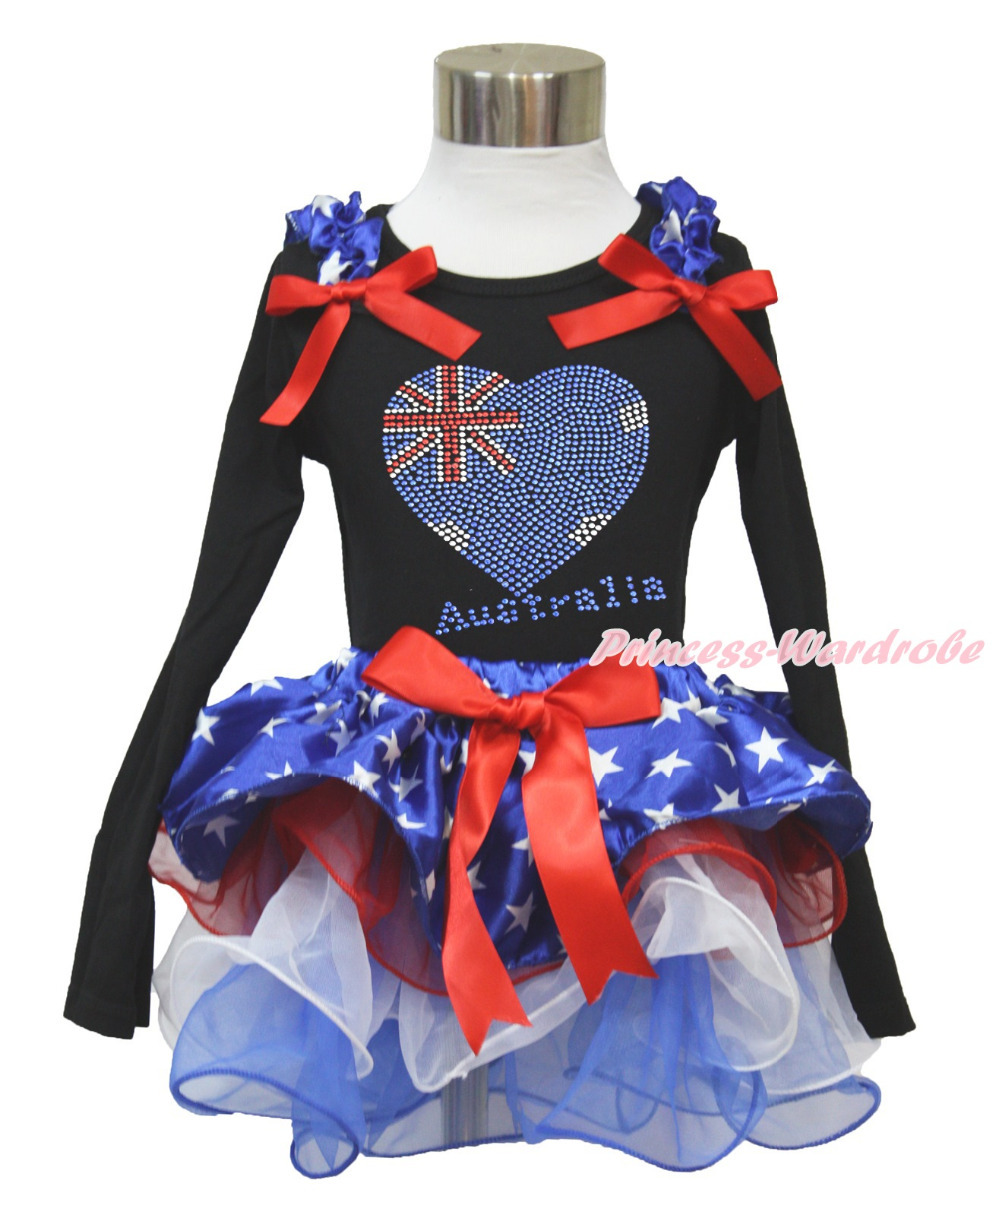 4th July Rhinestone Australia Heart Black L/S Top Patriotic Star Red White Petal Pettiskirt Girl NB-8Year MAMH232 одежда для йоги korea yoga 118700 2015